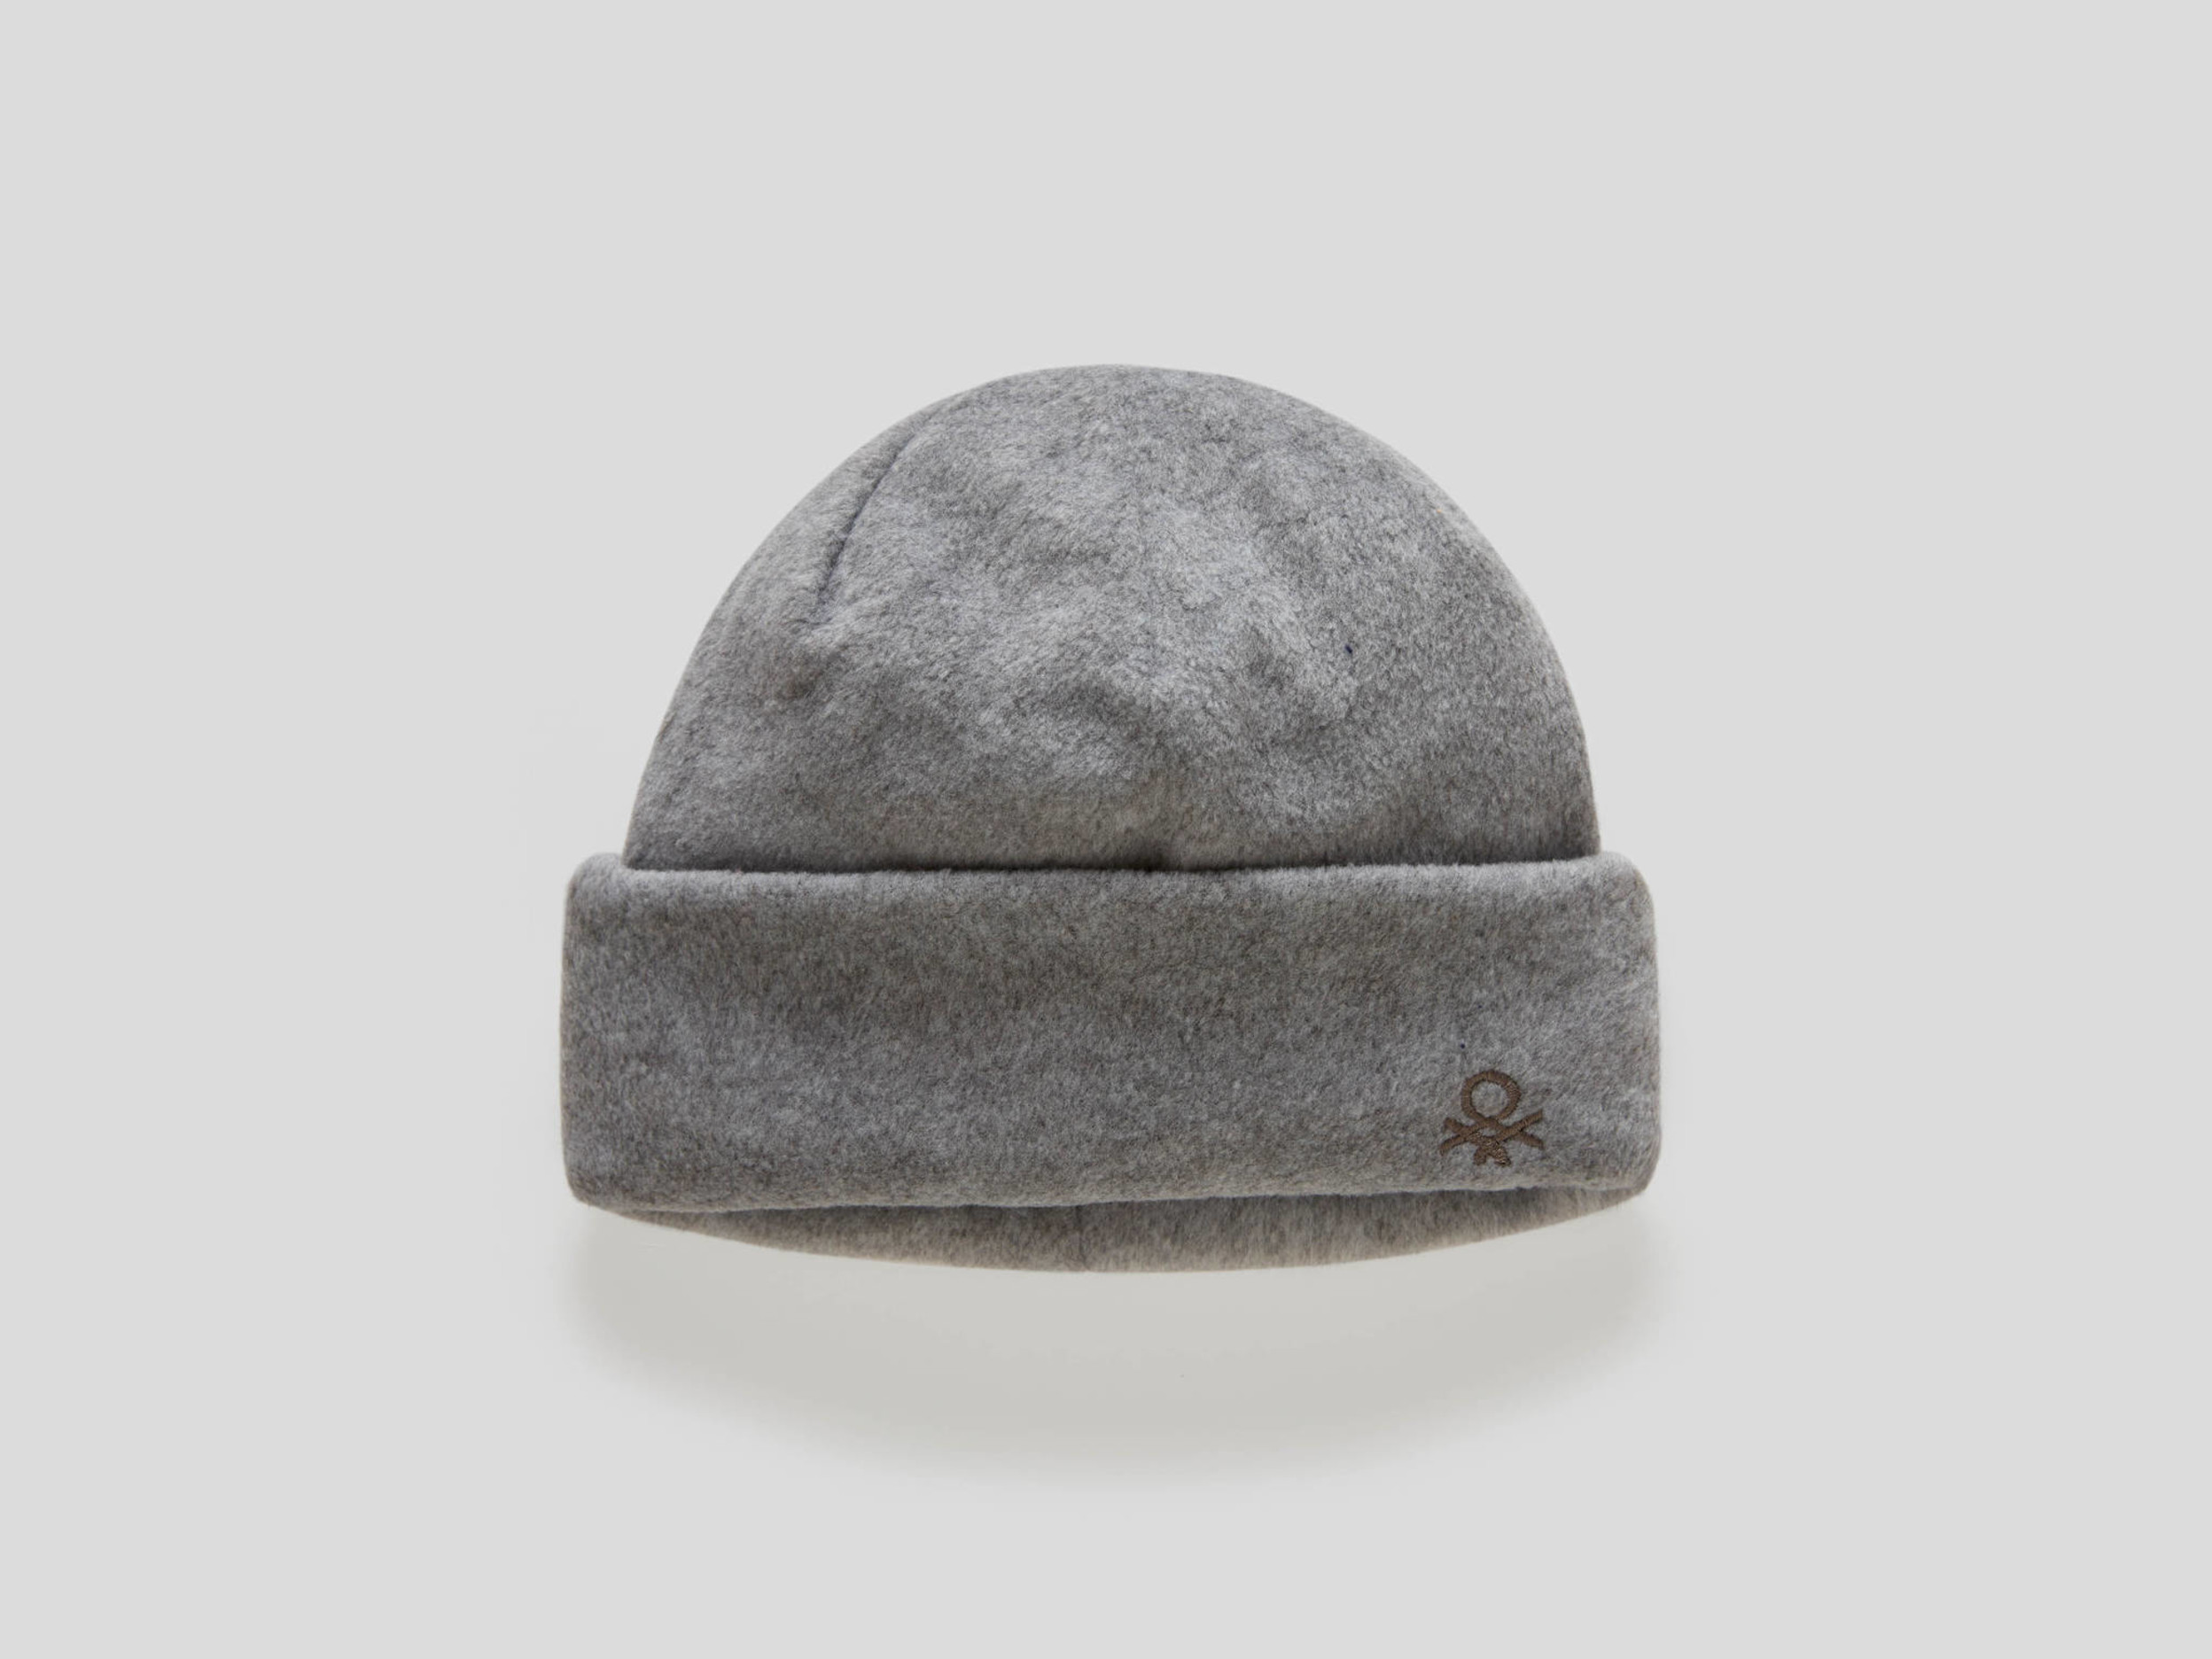 Benetton, Fleece Hat With Embroidered Logo, size , Gray, Kids